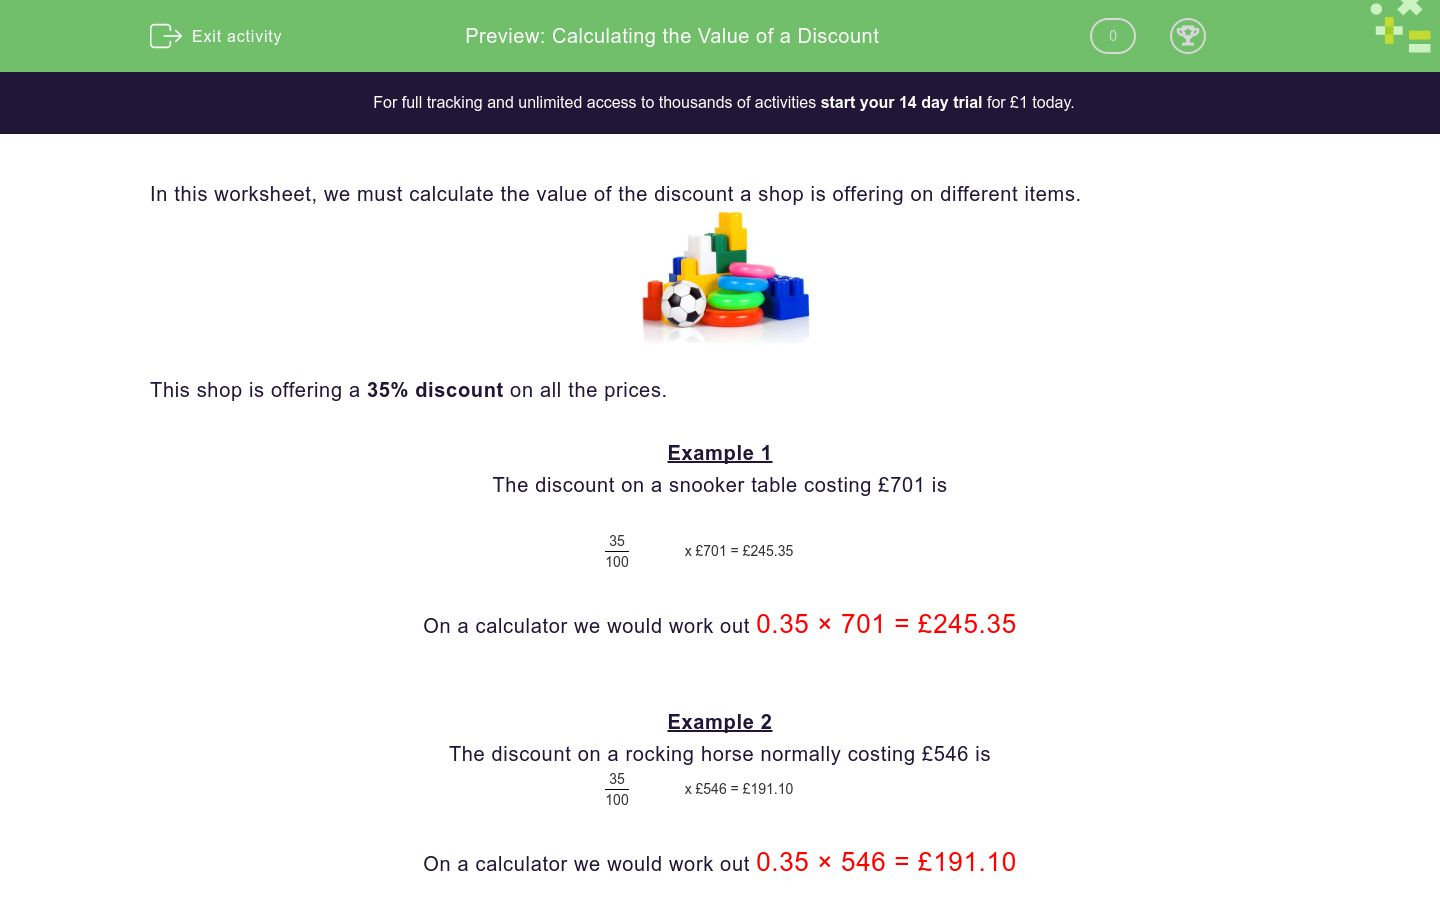 'Calculating the Value of a Discount' worksheet